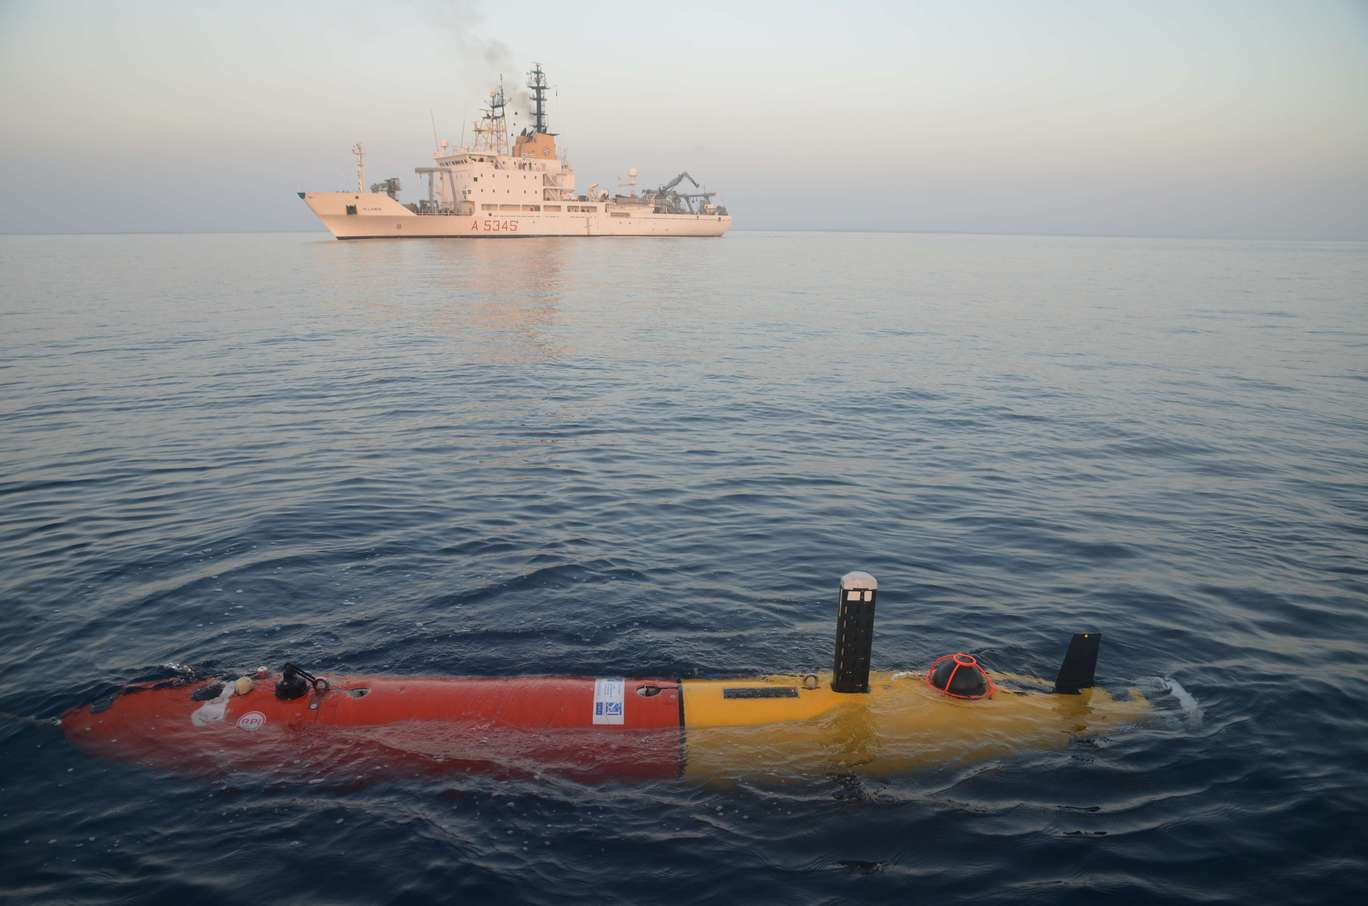 The NRV Alliance with the Ocean Explorer autonomous underwater vehicle